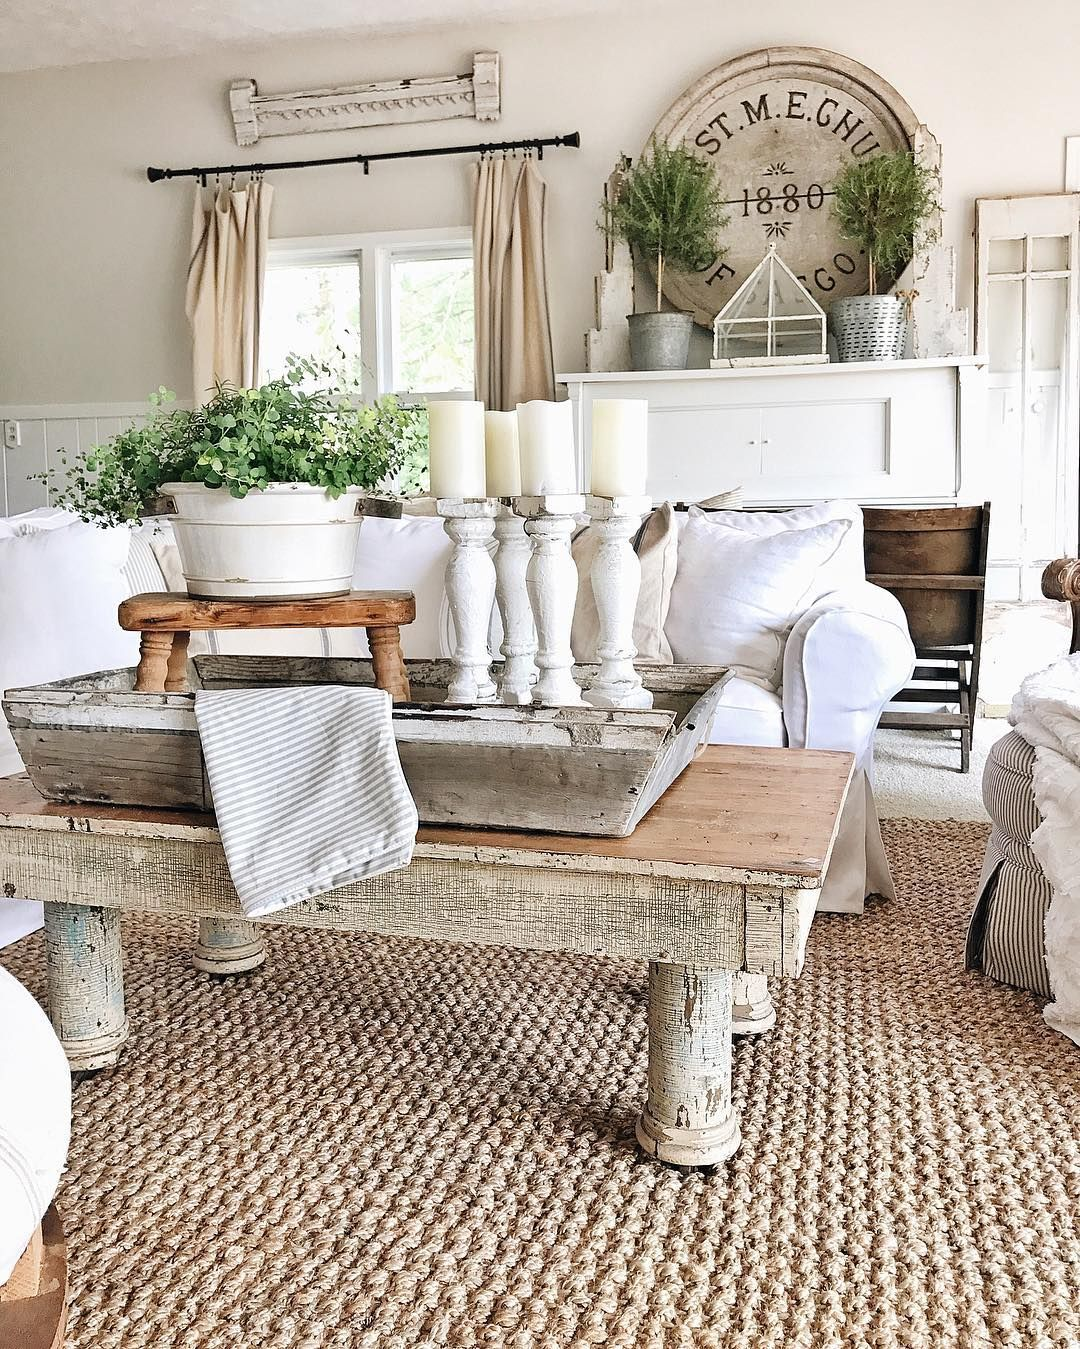 Shabby chic living using chippy elements. Fabulous coffee